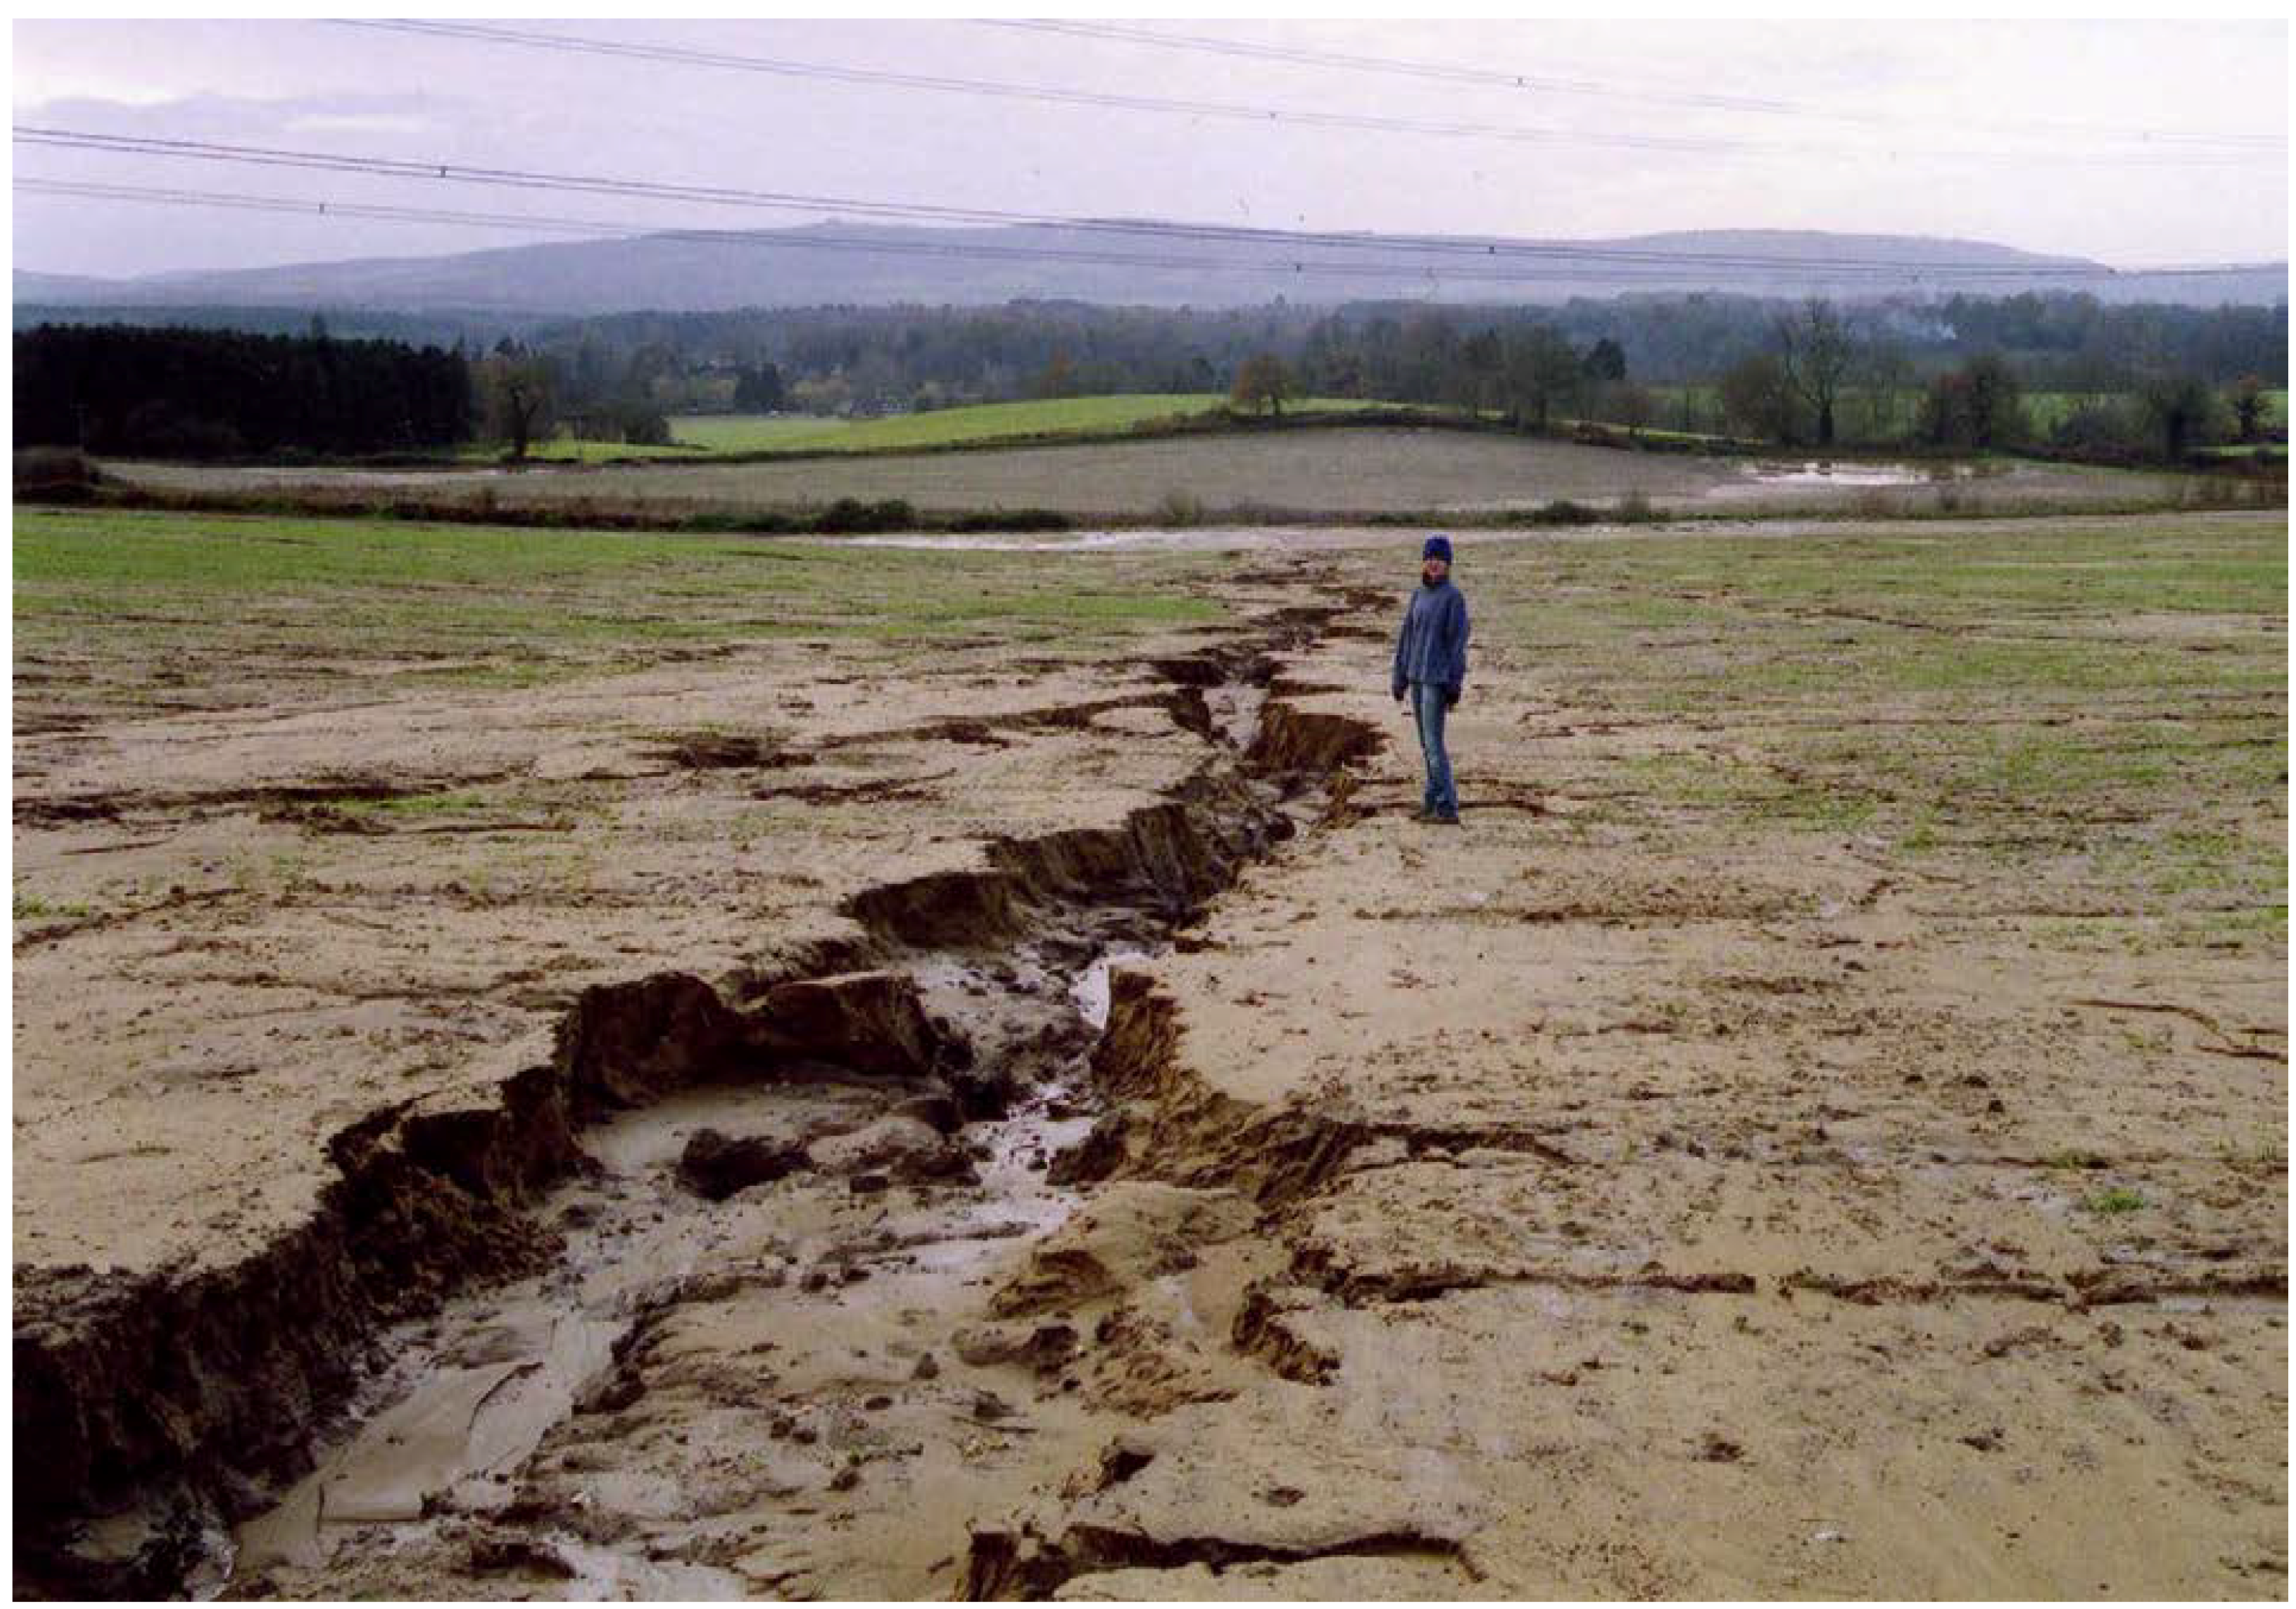 agriculture full text soil erosion in britain updating agriculture 03 00418 g008 1024